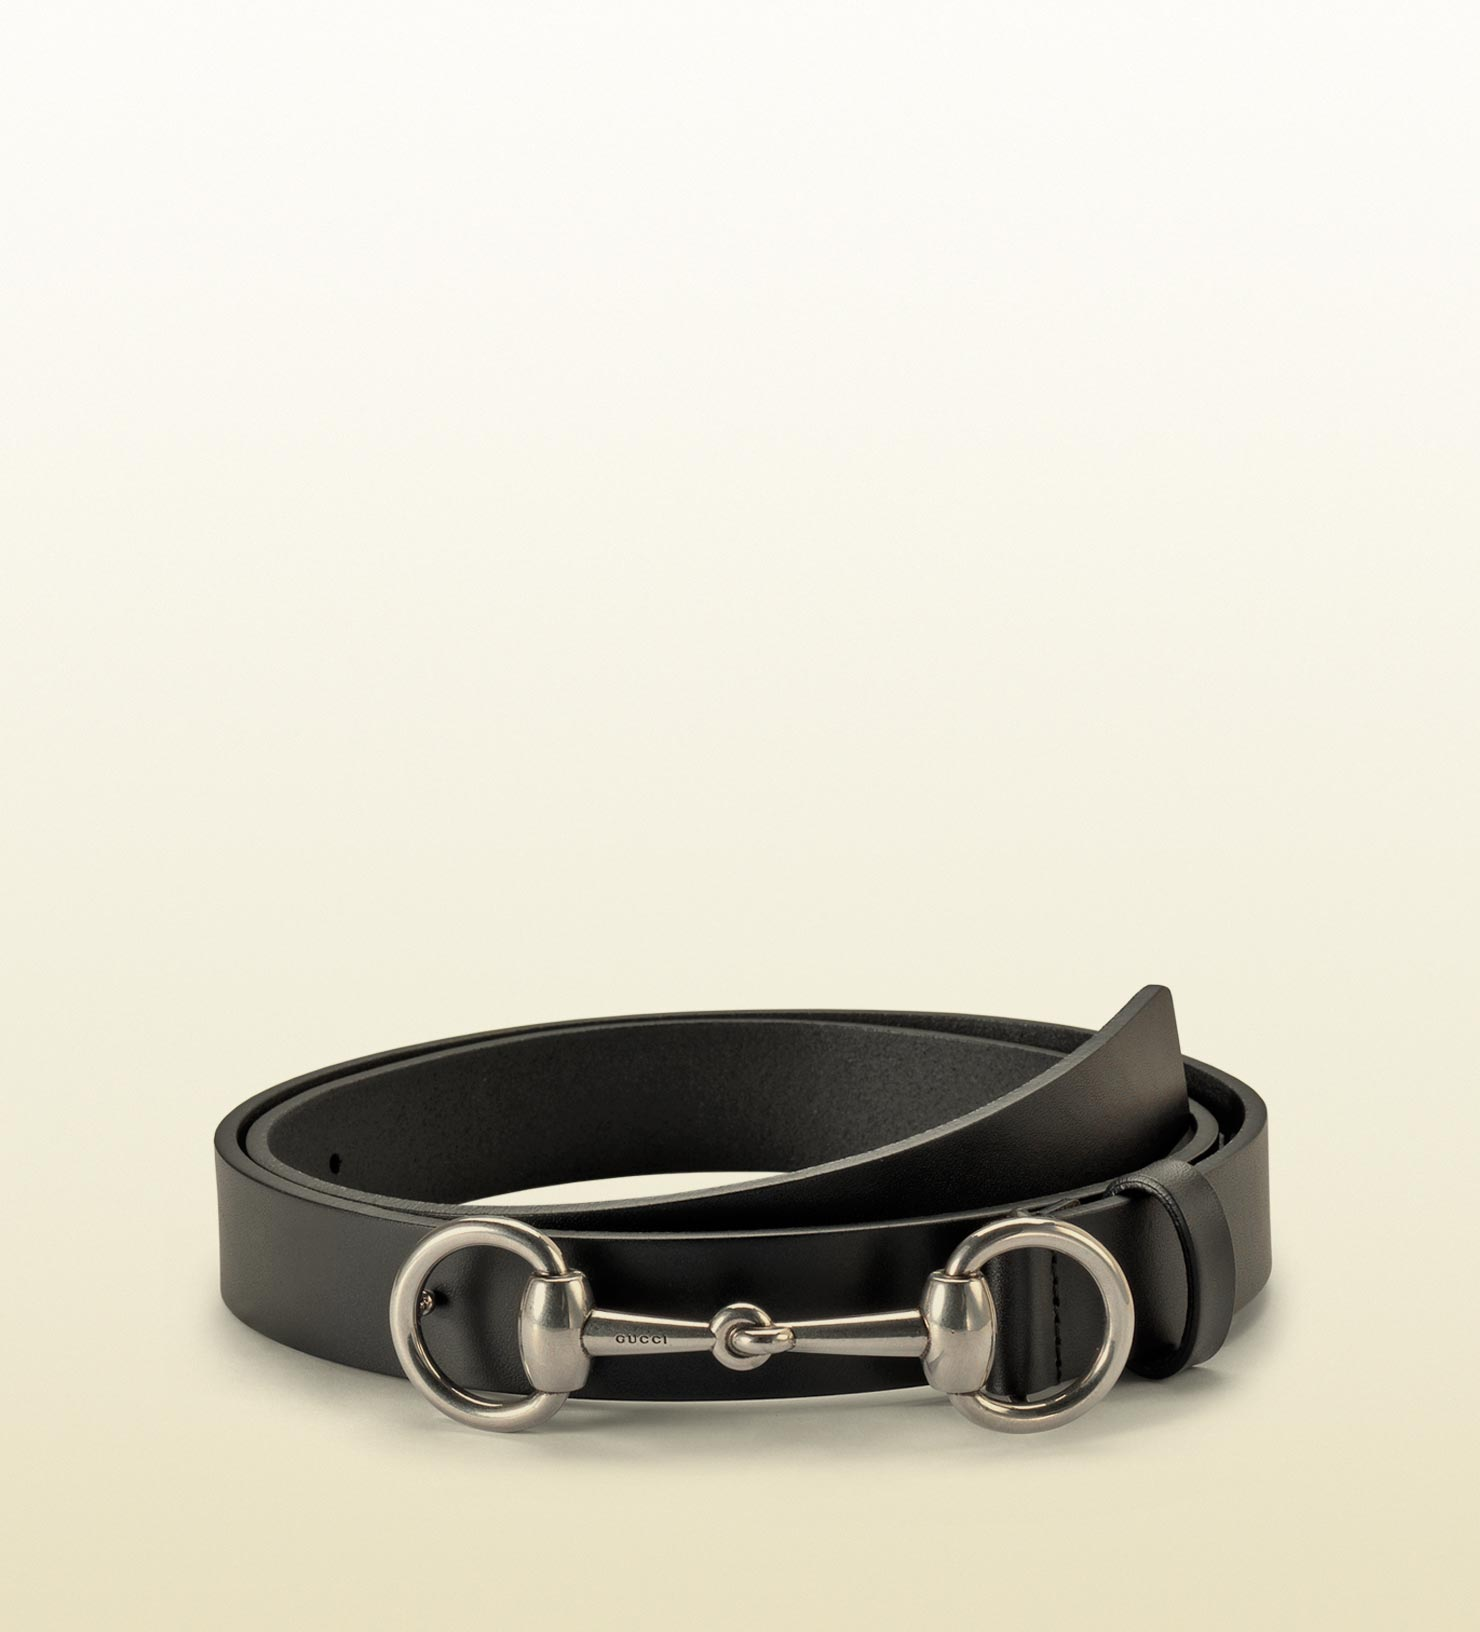 52a553c7045 Lyst - Gucci Black Leather Belt With Horsebit Buckle in Black for Men